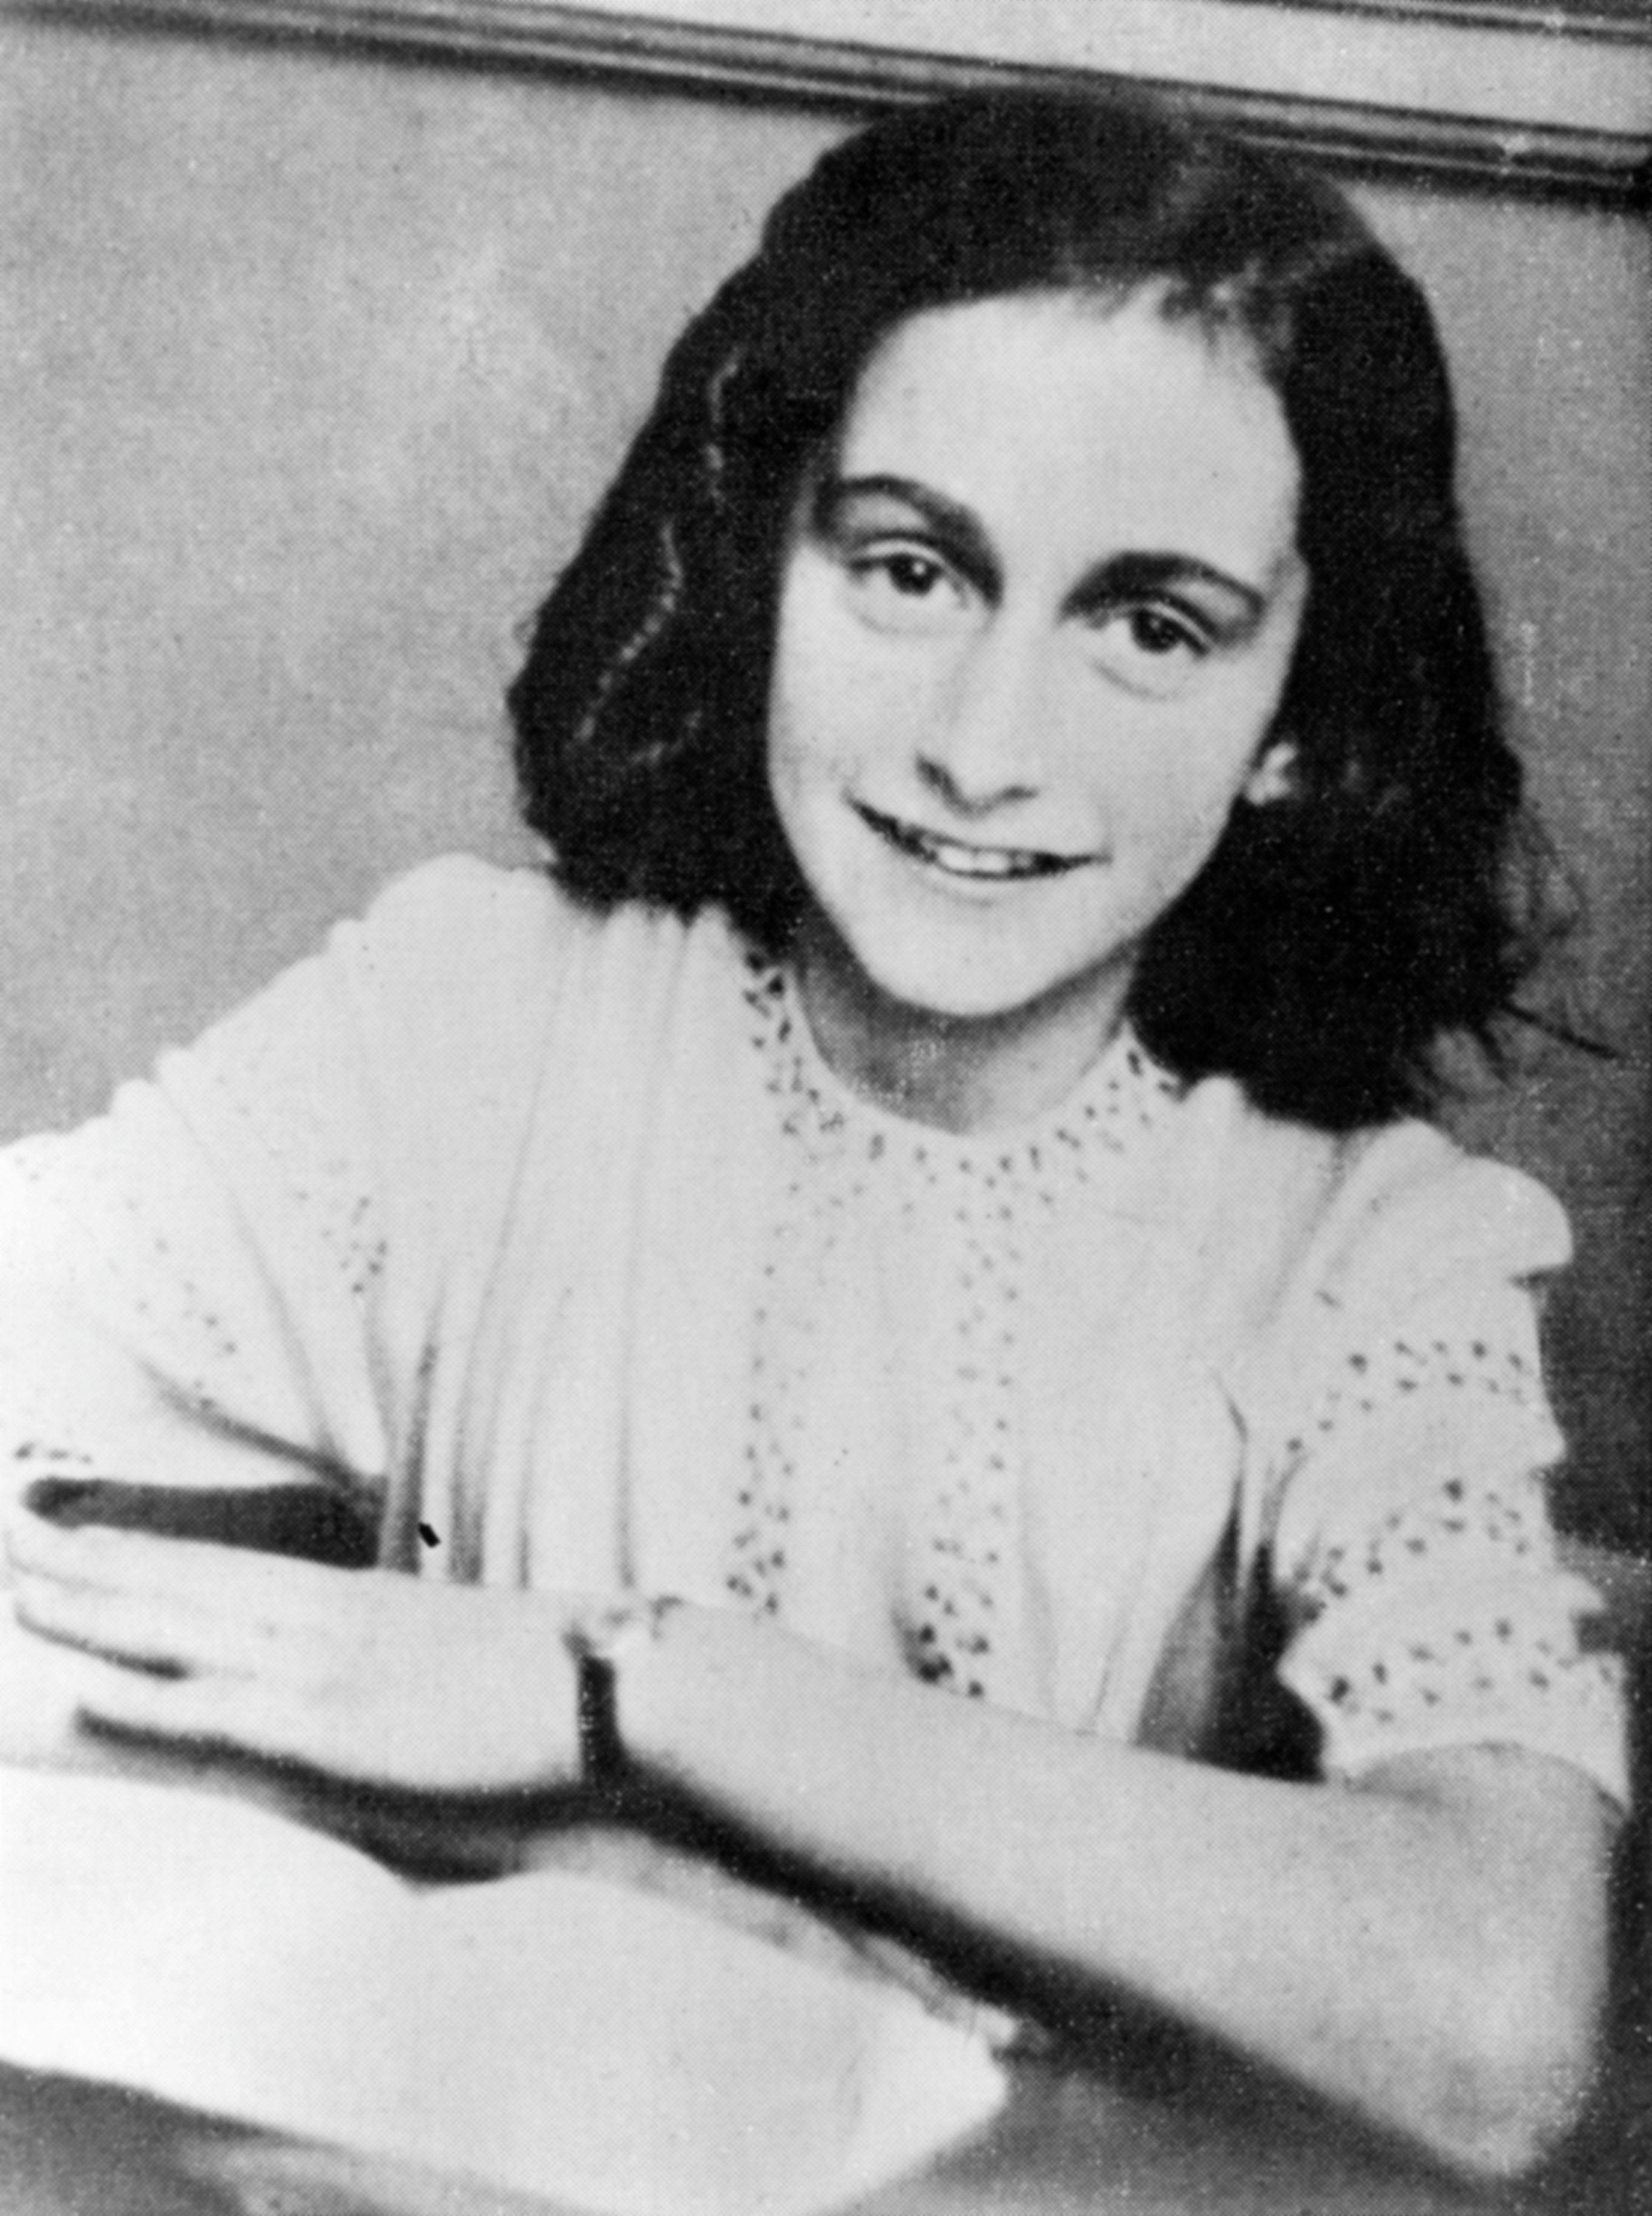 Researchers Uncover Secret Pages In Diary Of Anne Frank